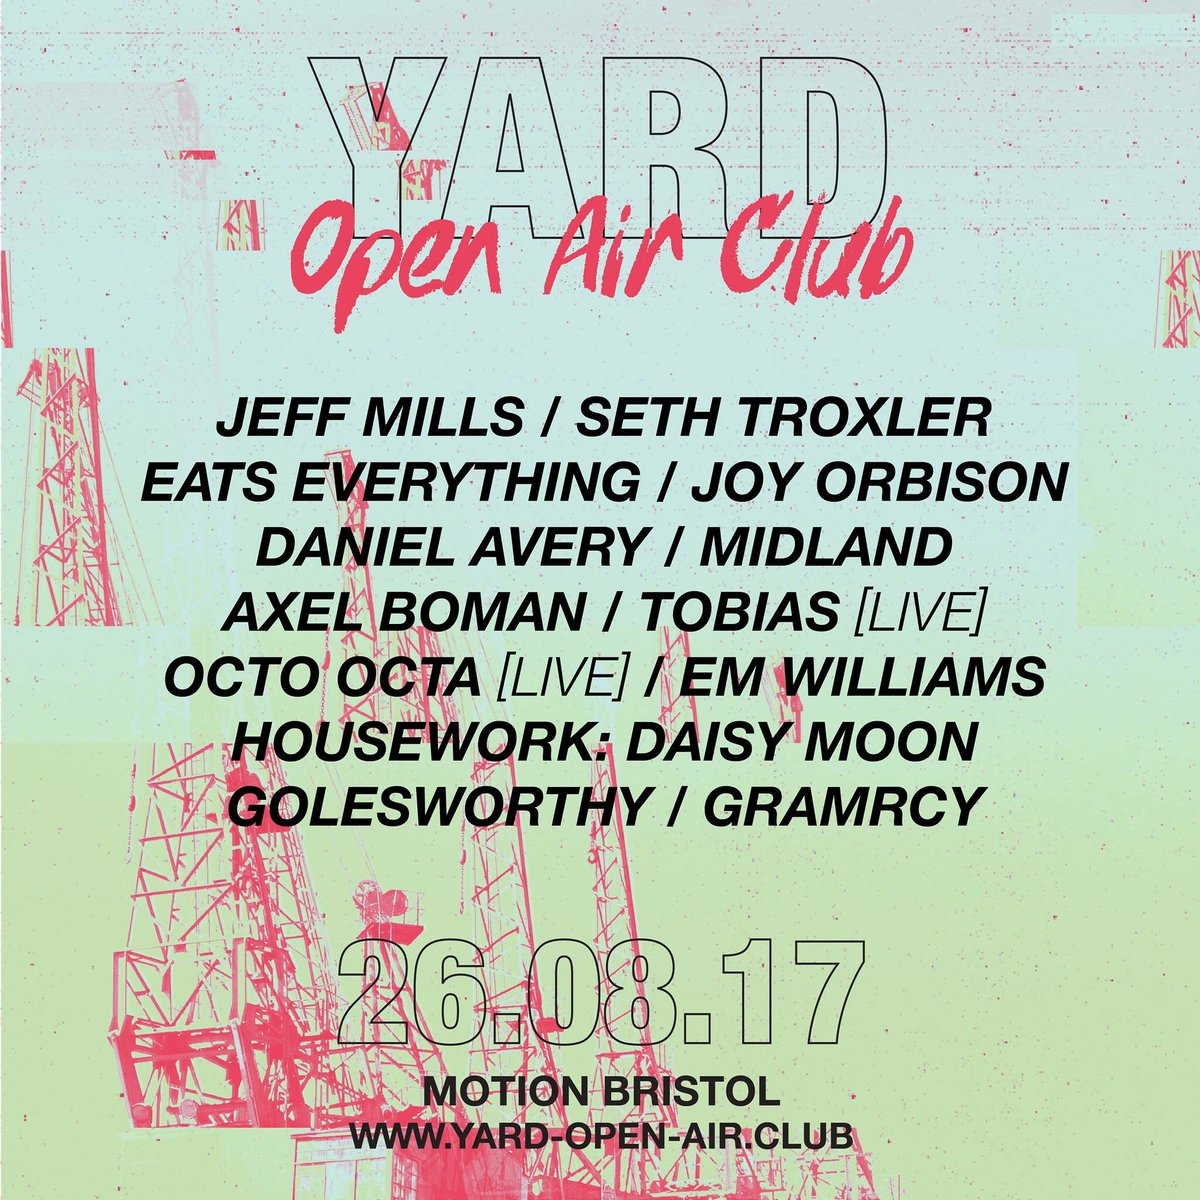 Incredibly excited to announce the line up for the very first 'Yard: Open Air Club'.